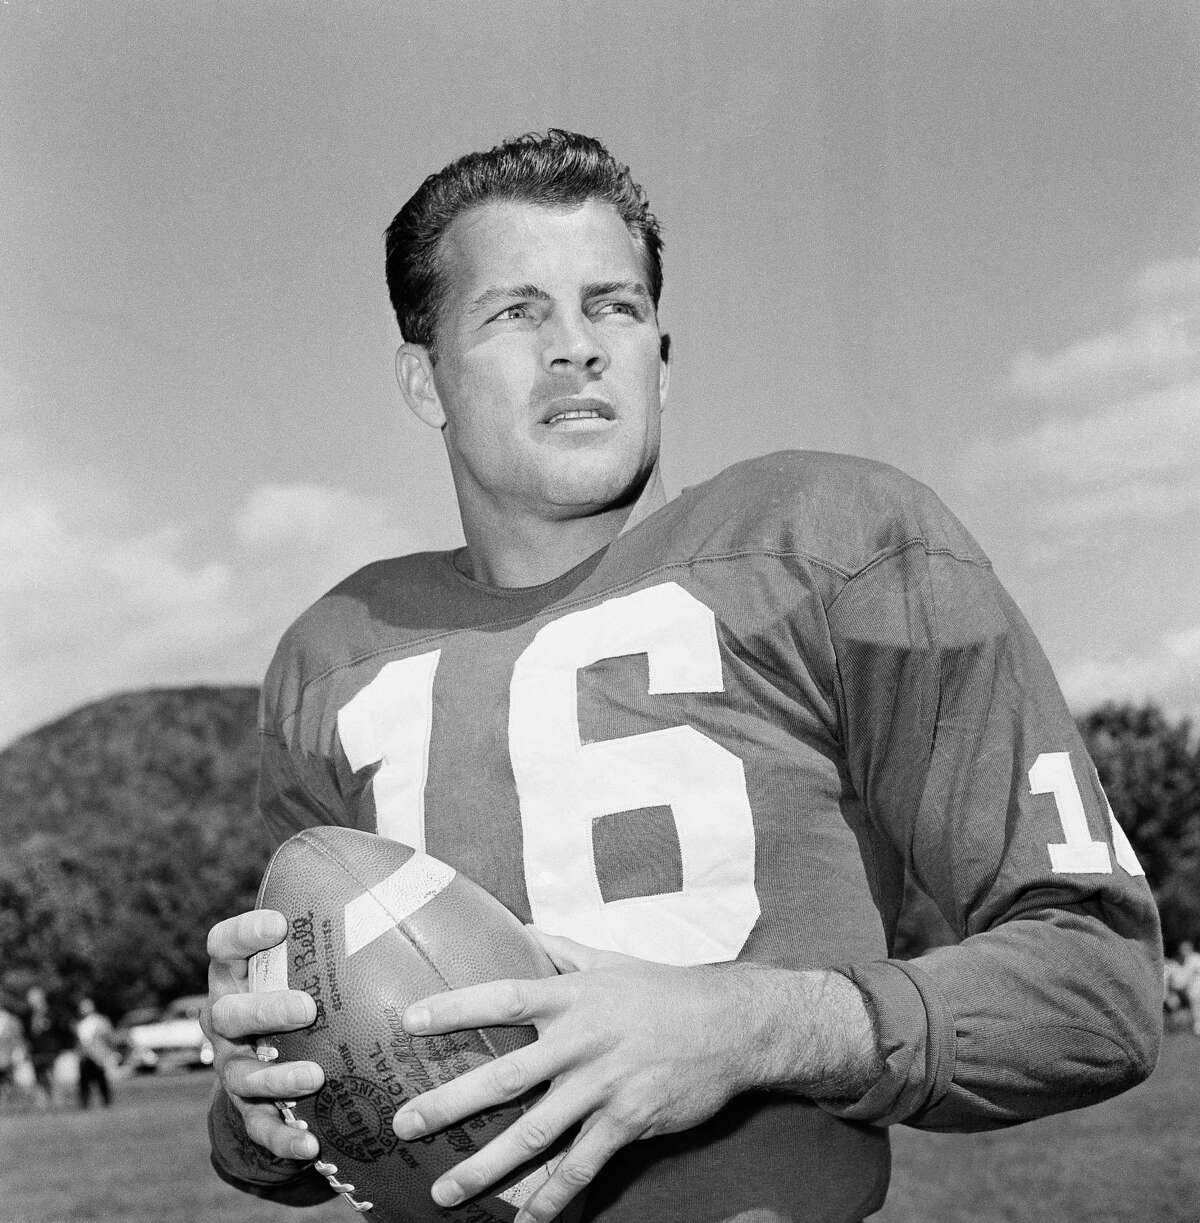 In this Sept. 9, 1958 file photo, New York Giants halfback Frank Gifford participates in a workout in New York. Gifford's family on Sunday said he died suddenly of natural causes. He was 84.